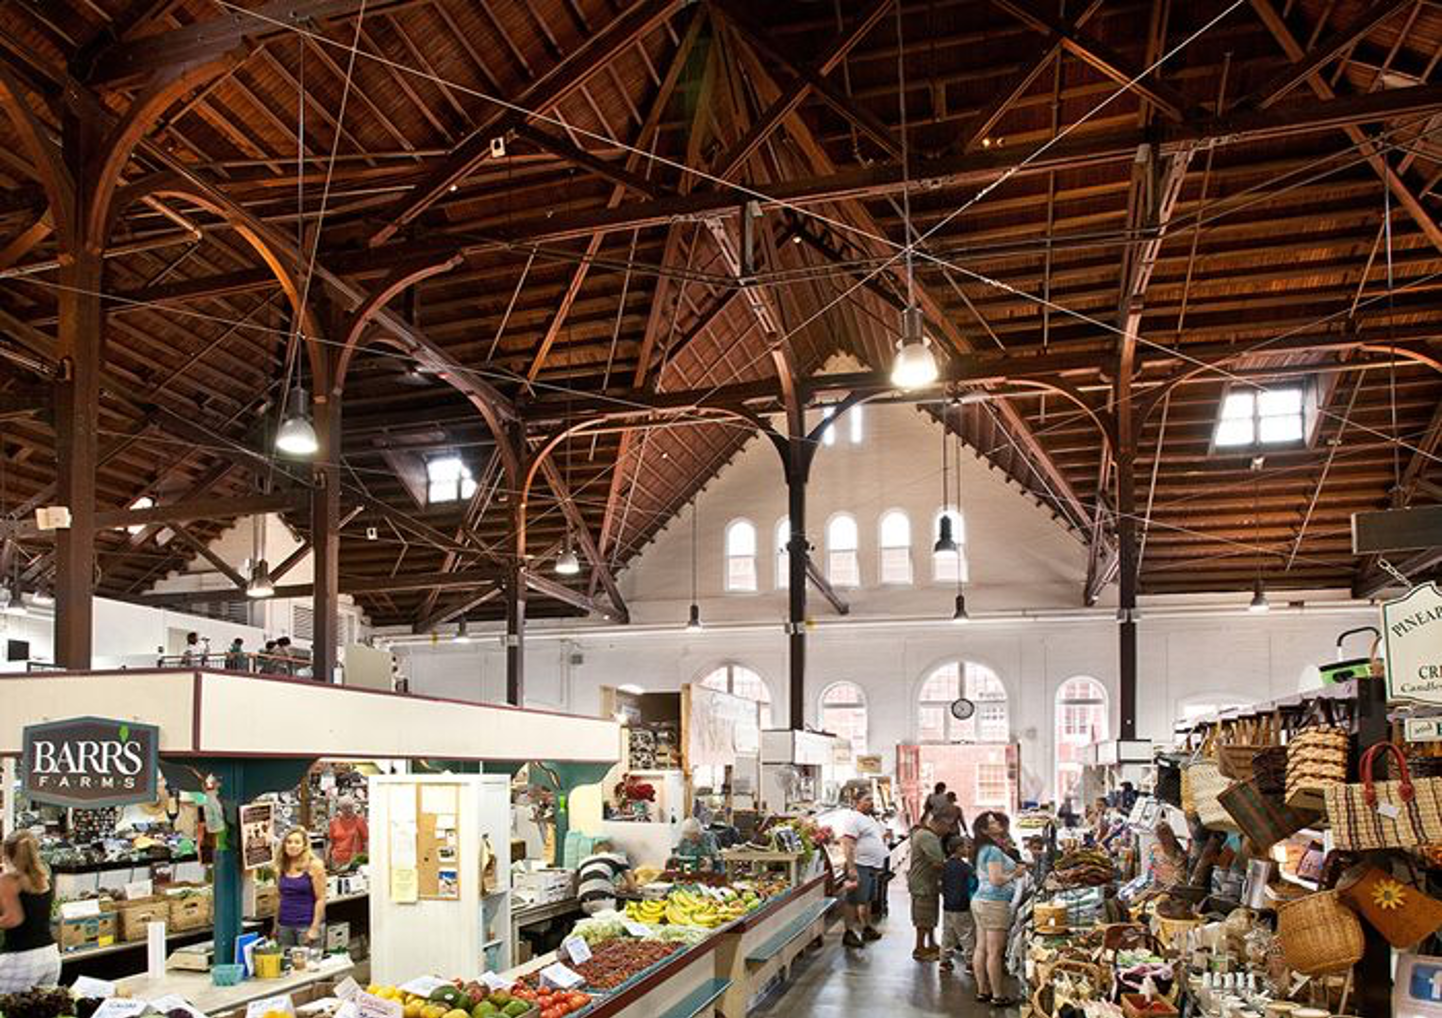 sweeping view of massive farmer's market